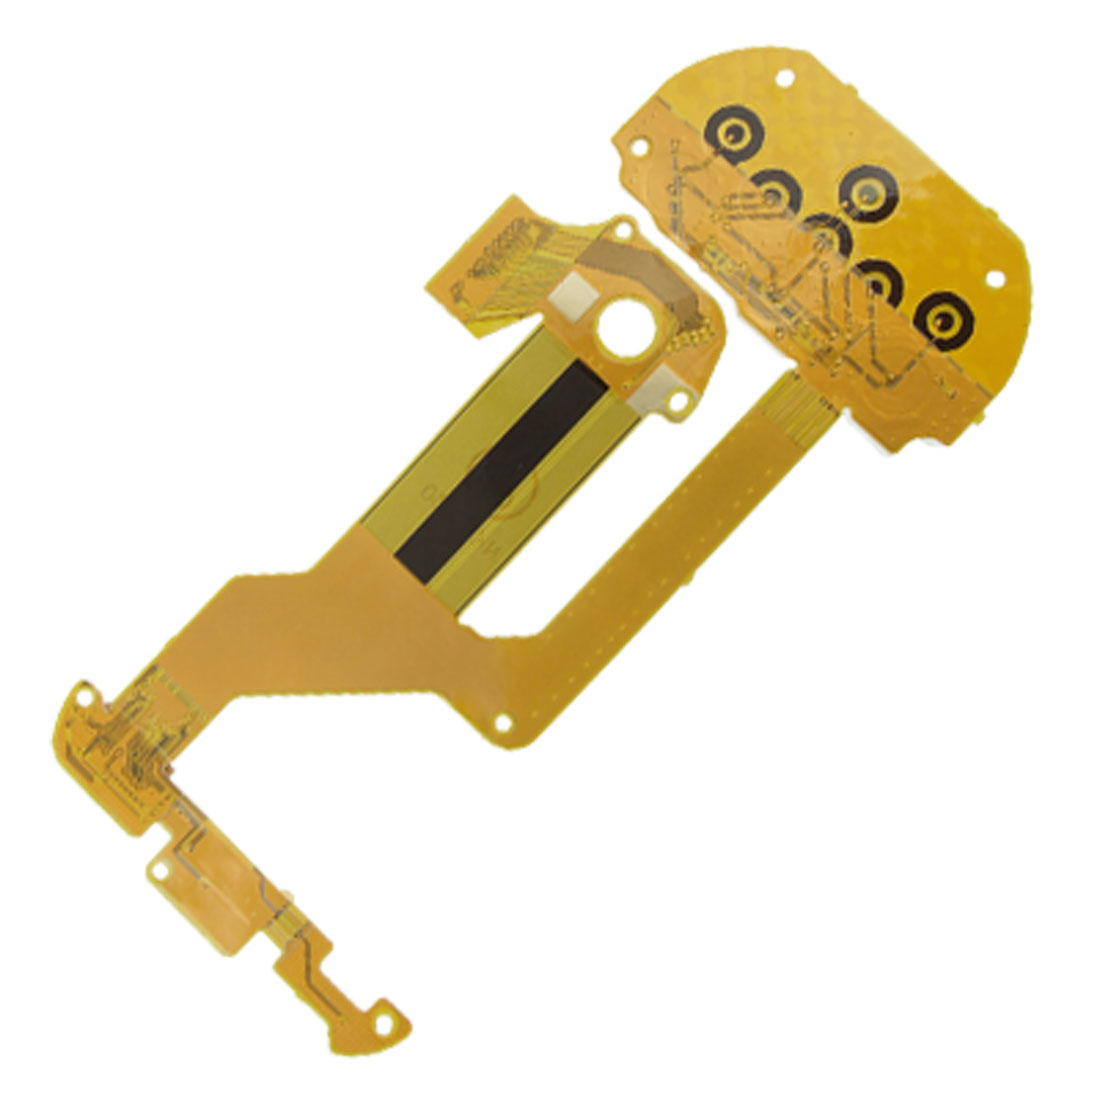 Replacement Flex Cable Connector for Nokia 7230